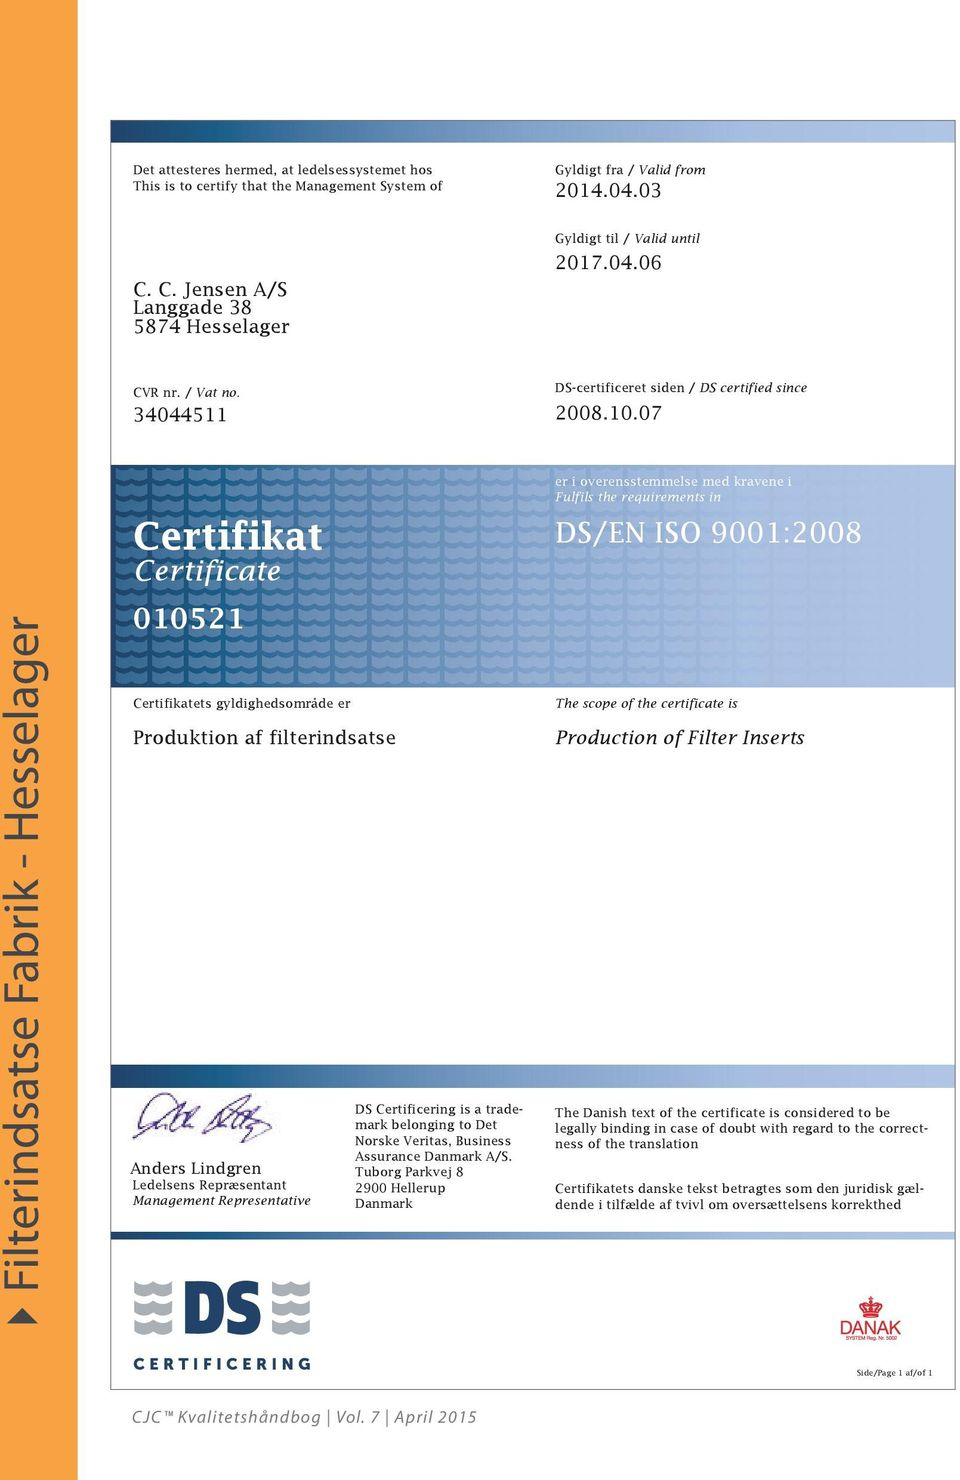 07 Certifikat Certificate 010521 er i overensstemmelse med kravene i Fulfils the requirements in DS/EN ISO 9001:2008 Certifikatets gyldighedsområde er Produktion af filterindsatse The scope of the